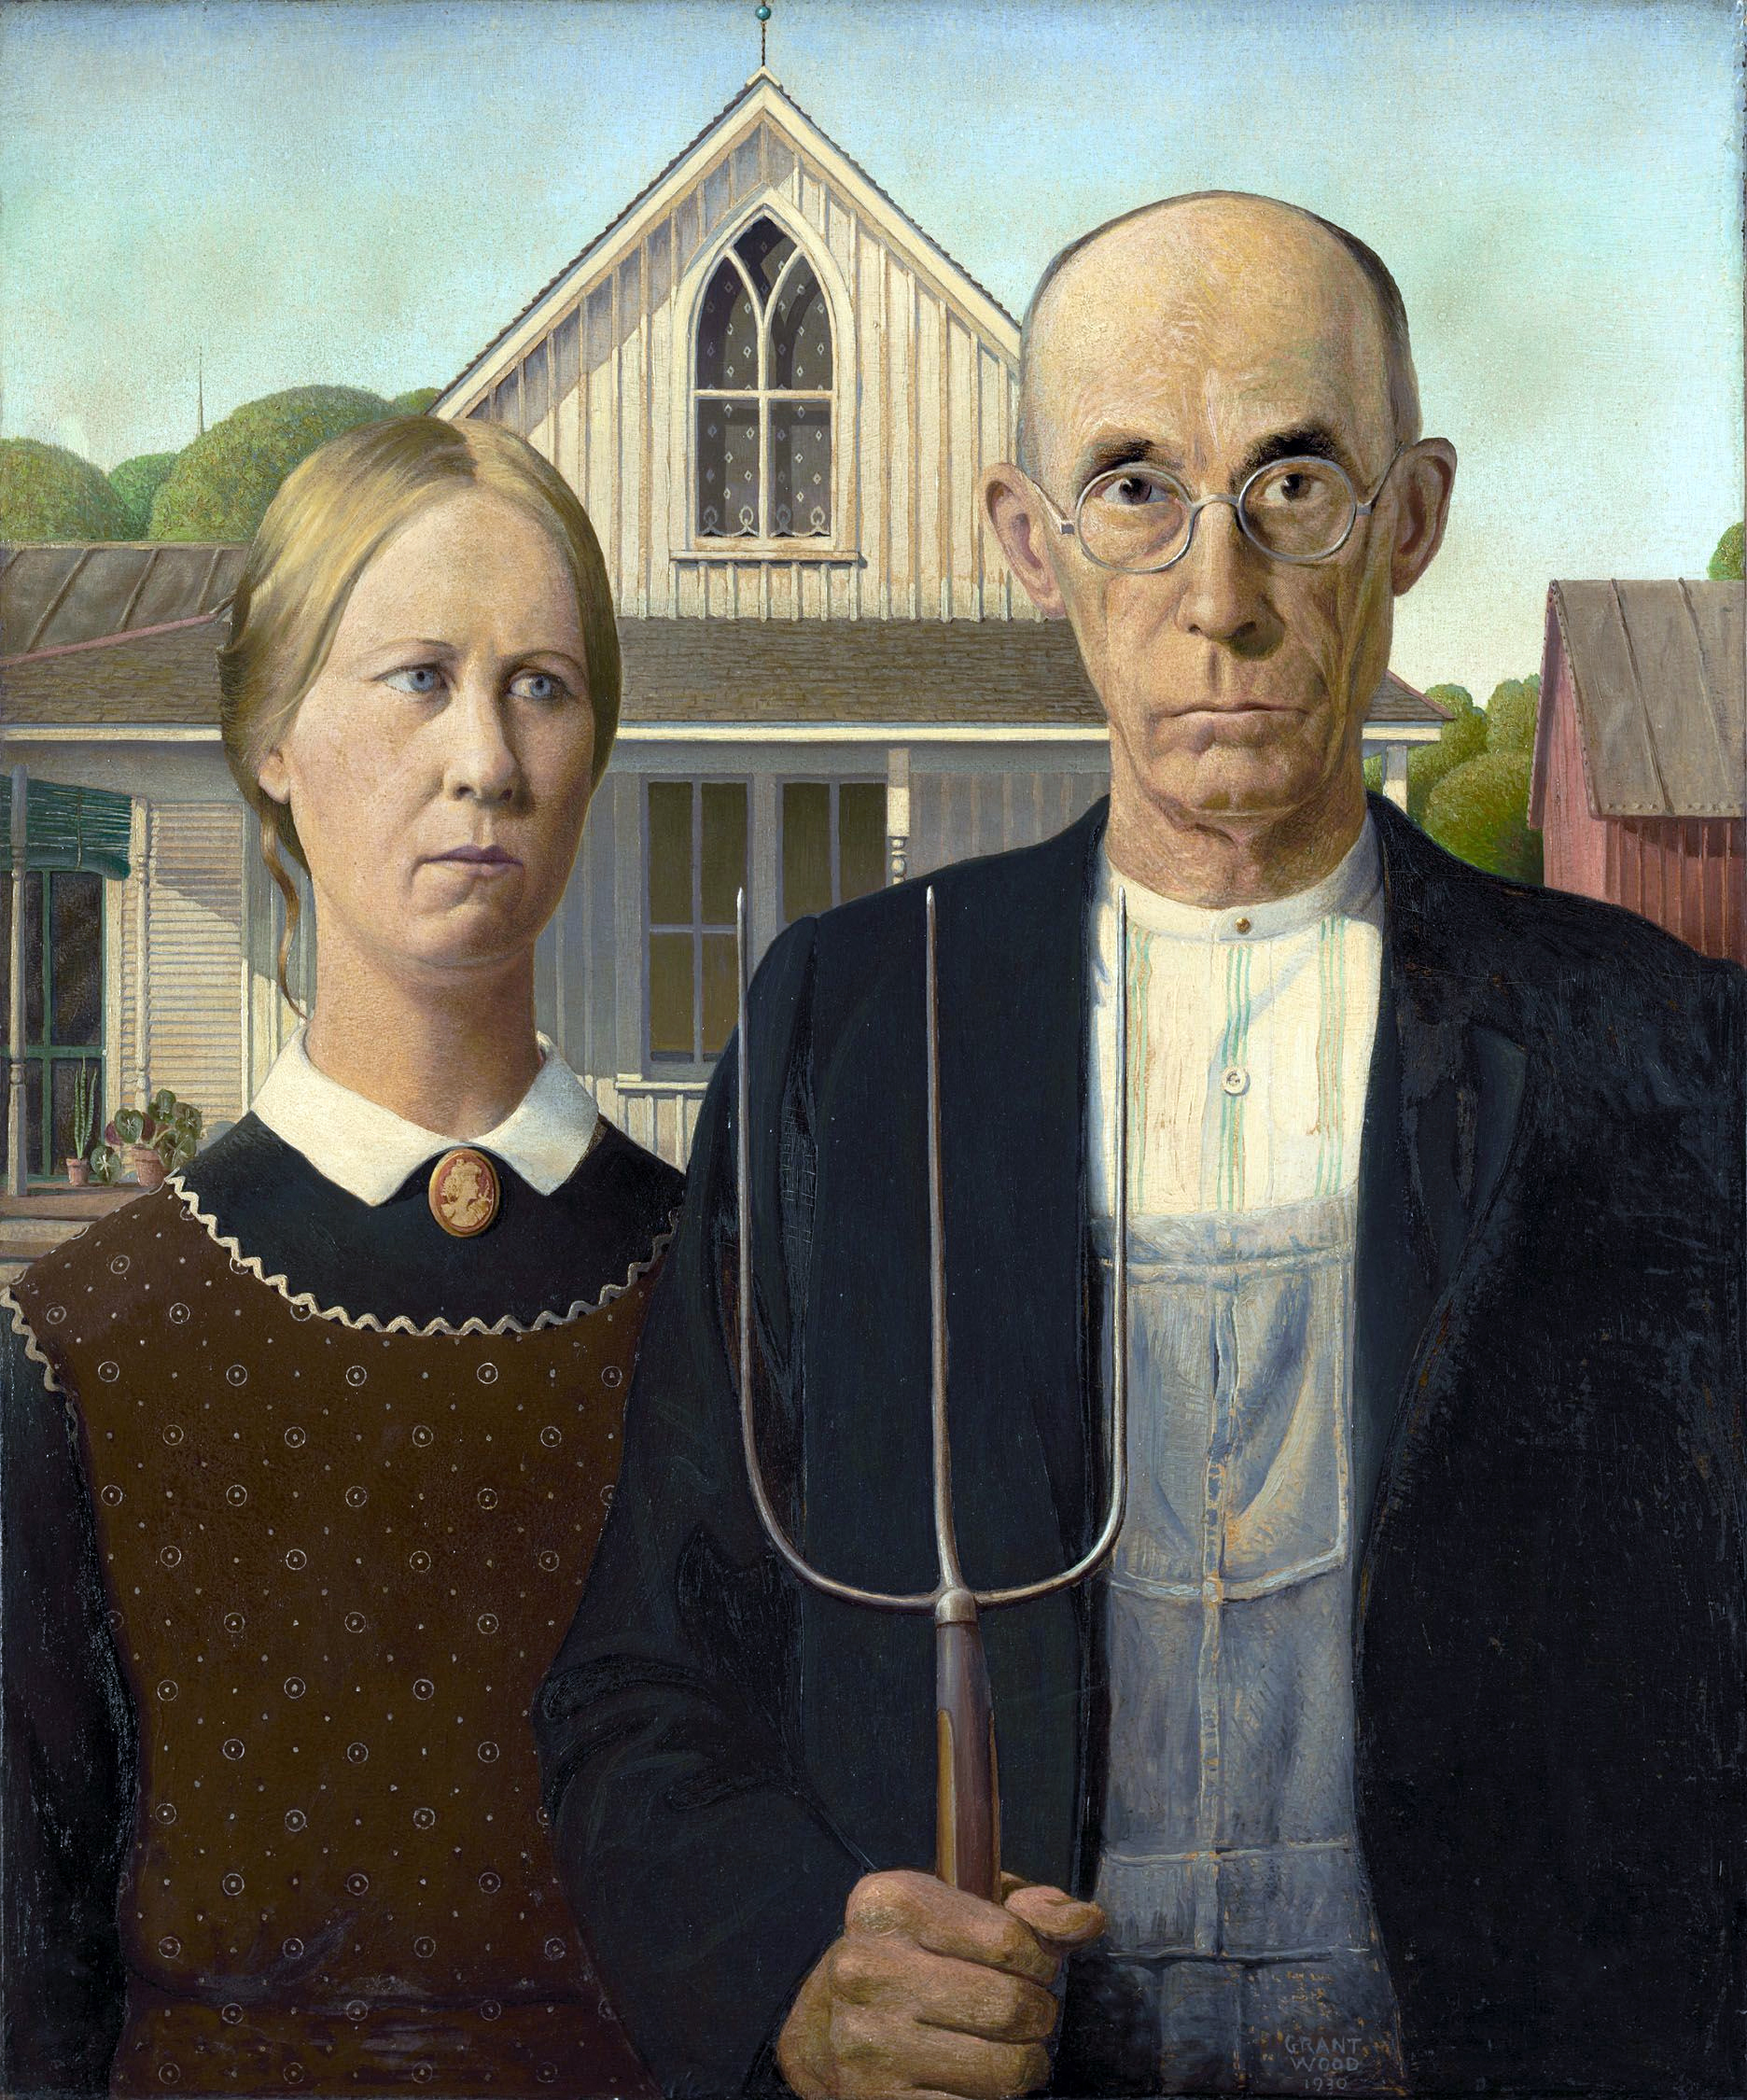 reproduction of painting American Gothic by Grant Wood